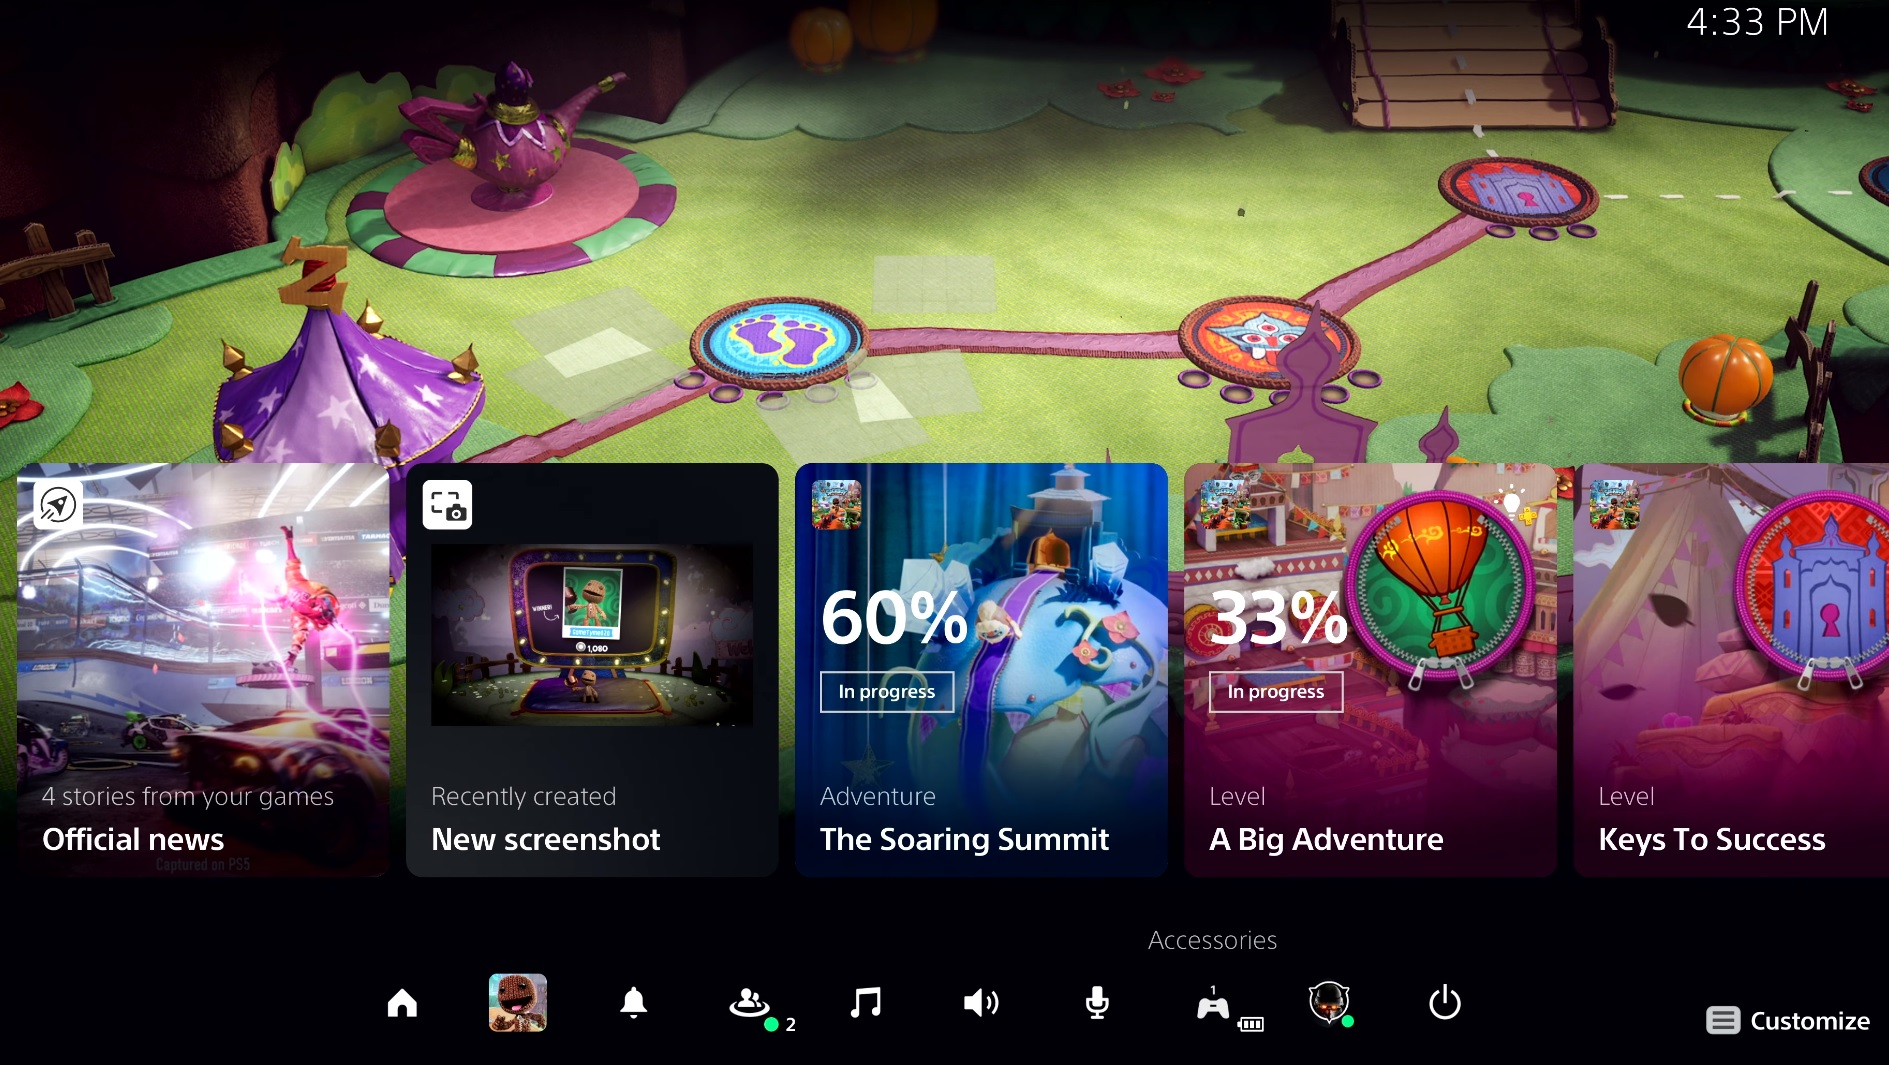 Here's our first look at the very different card-based PS5 UI screenshot